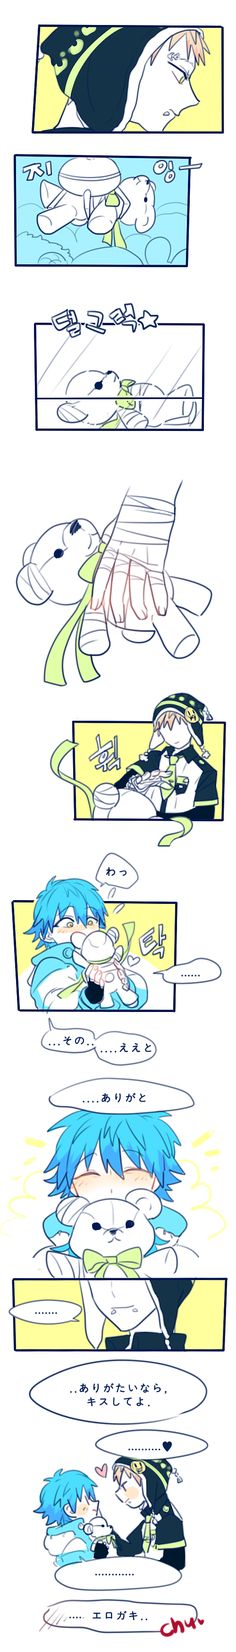 Noiz & Aoba DMMD [Part 2 End]